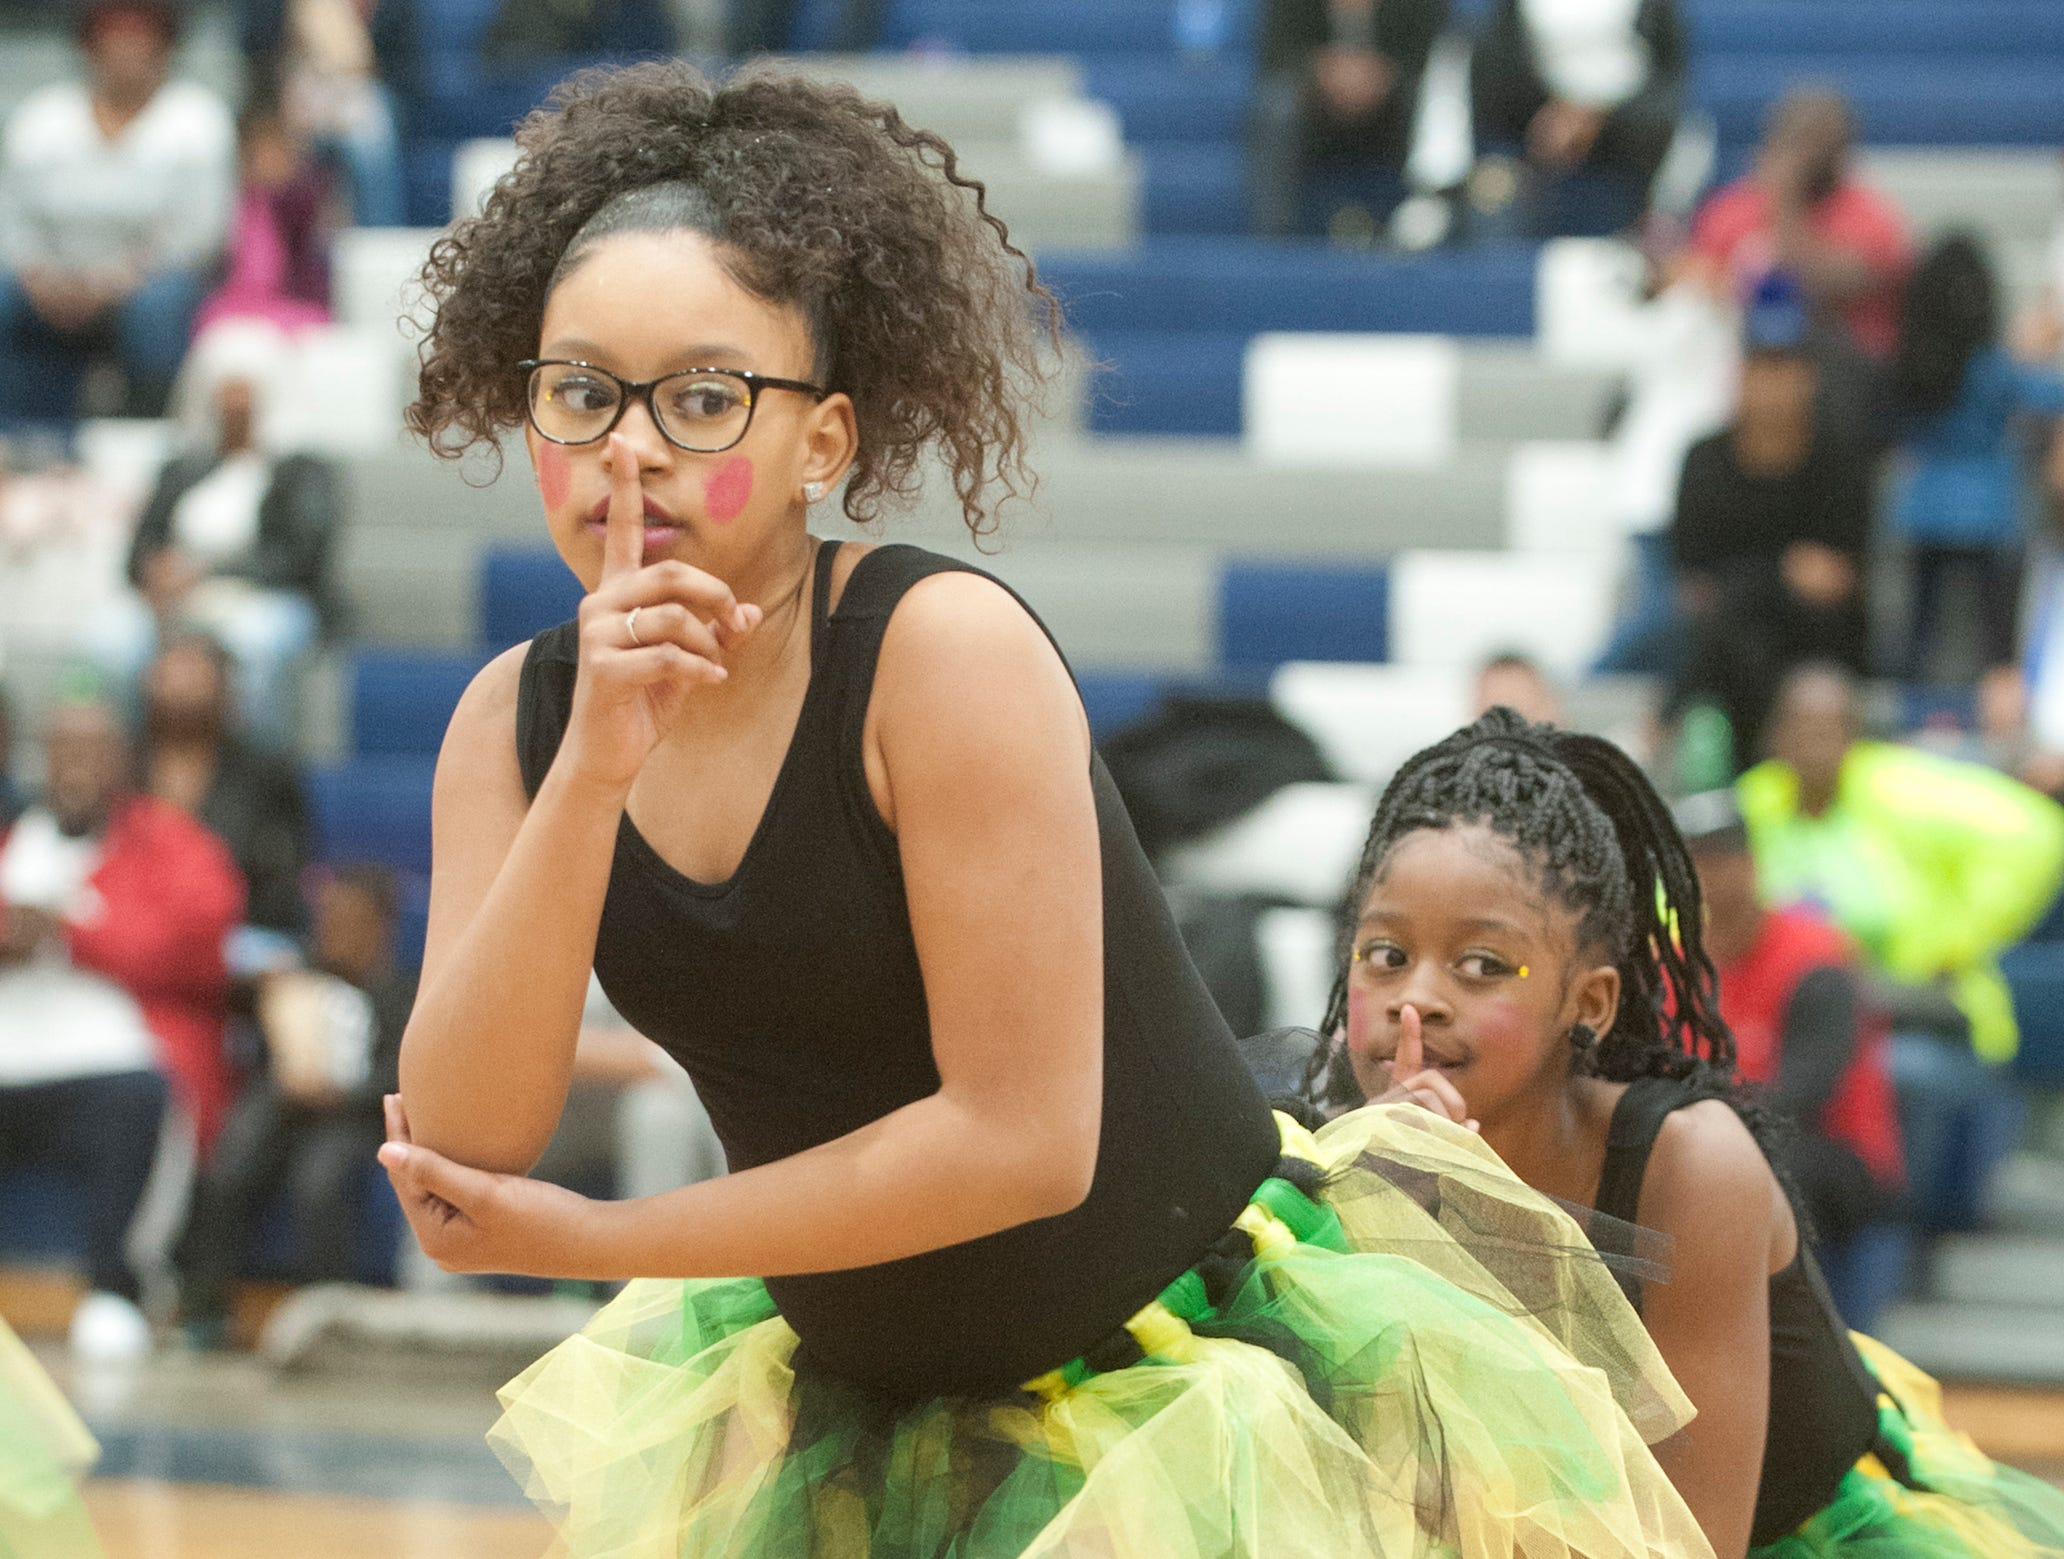 Kennedy Elementary 5th grader Aliviah Moore and her step teammates ask for quiet during a Barbie doll sleep sequence at StepFest, a Kentucky Derby Festival event sponsored by Louisville Parks and Recreation and held at Moore Traditional High School.